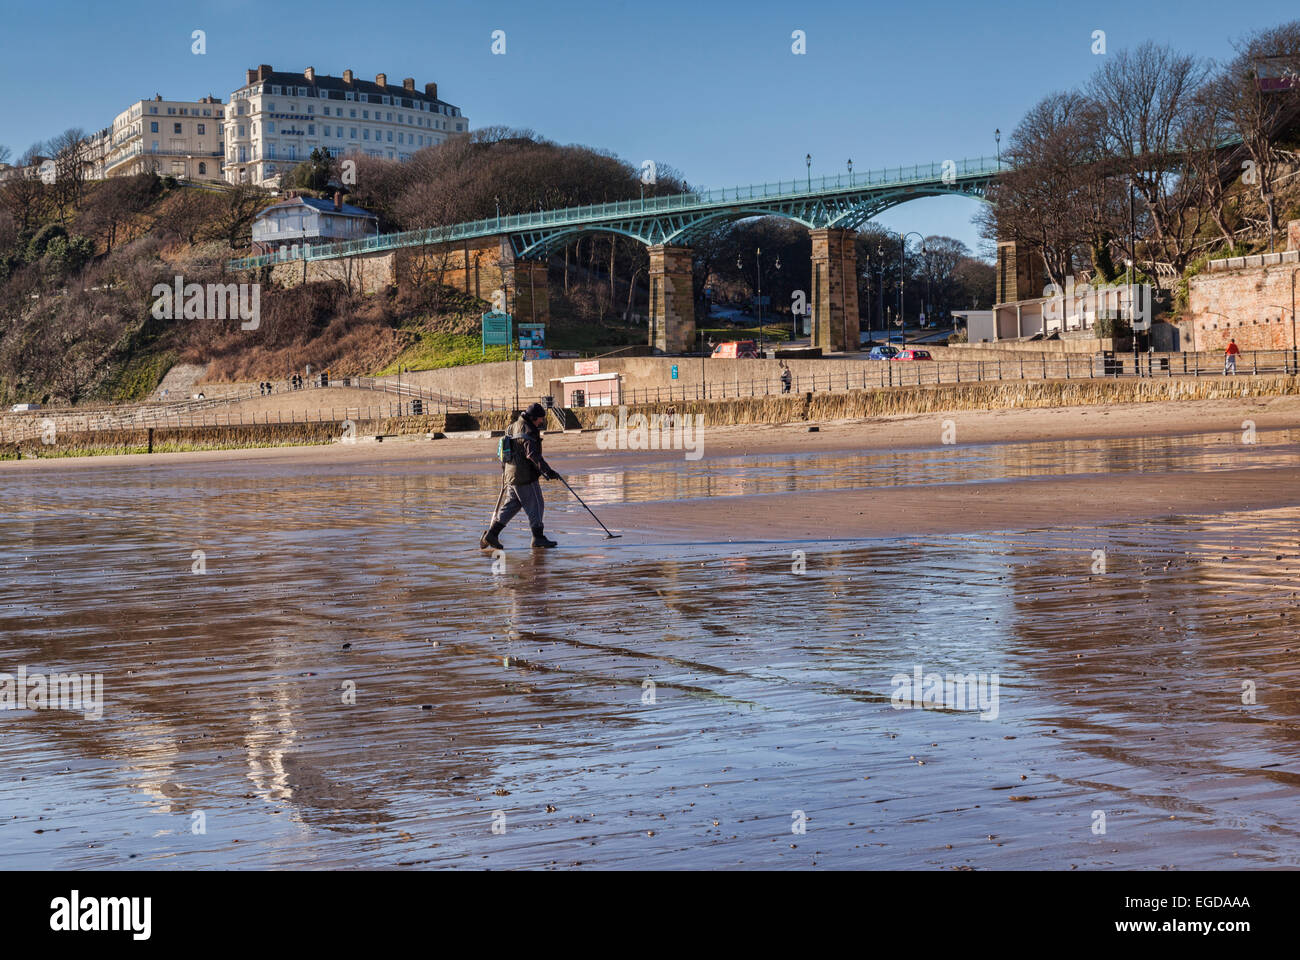 Man metal detecting on Scarborough Beach. In the background are the Spa Bridge and the Esplanade Hotel. - Stock Image